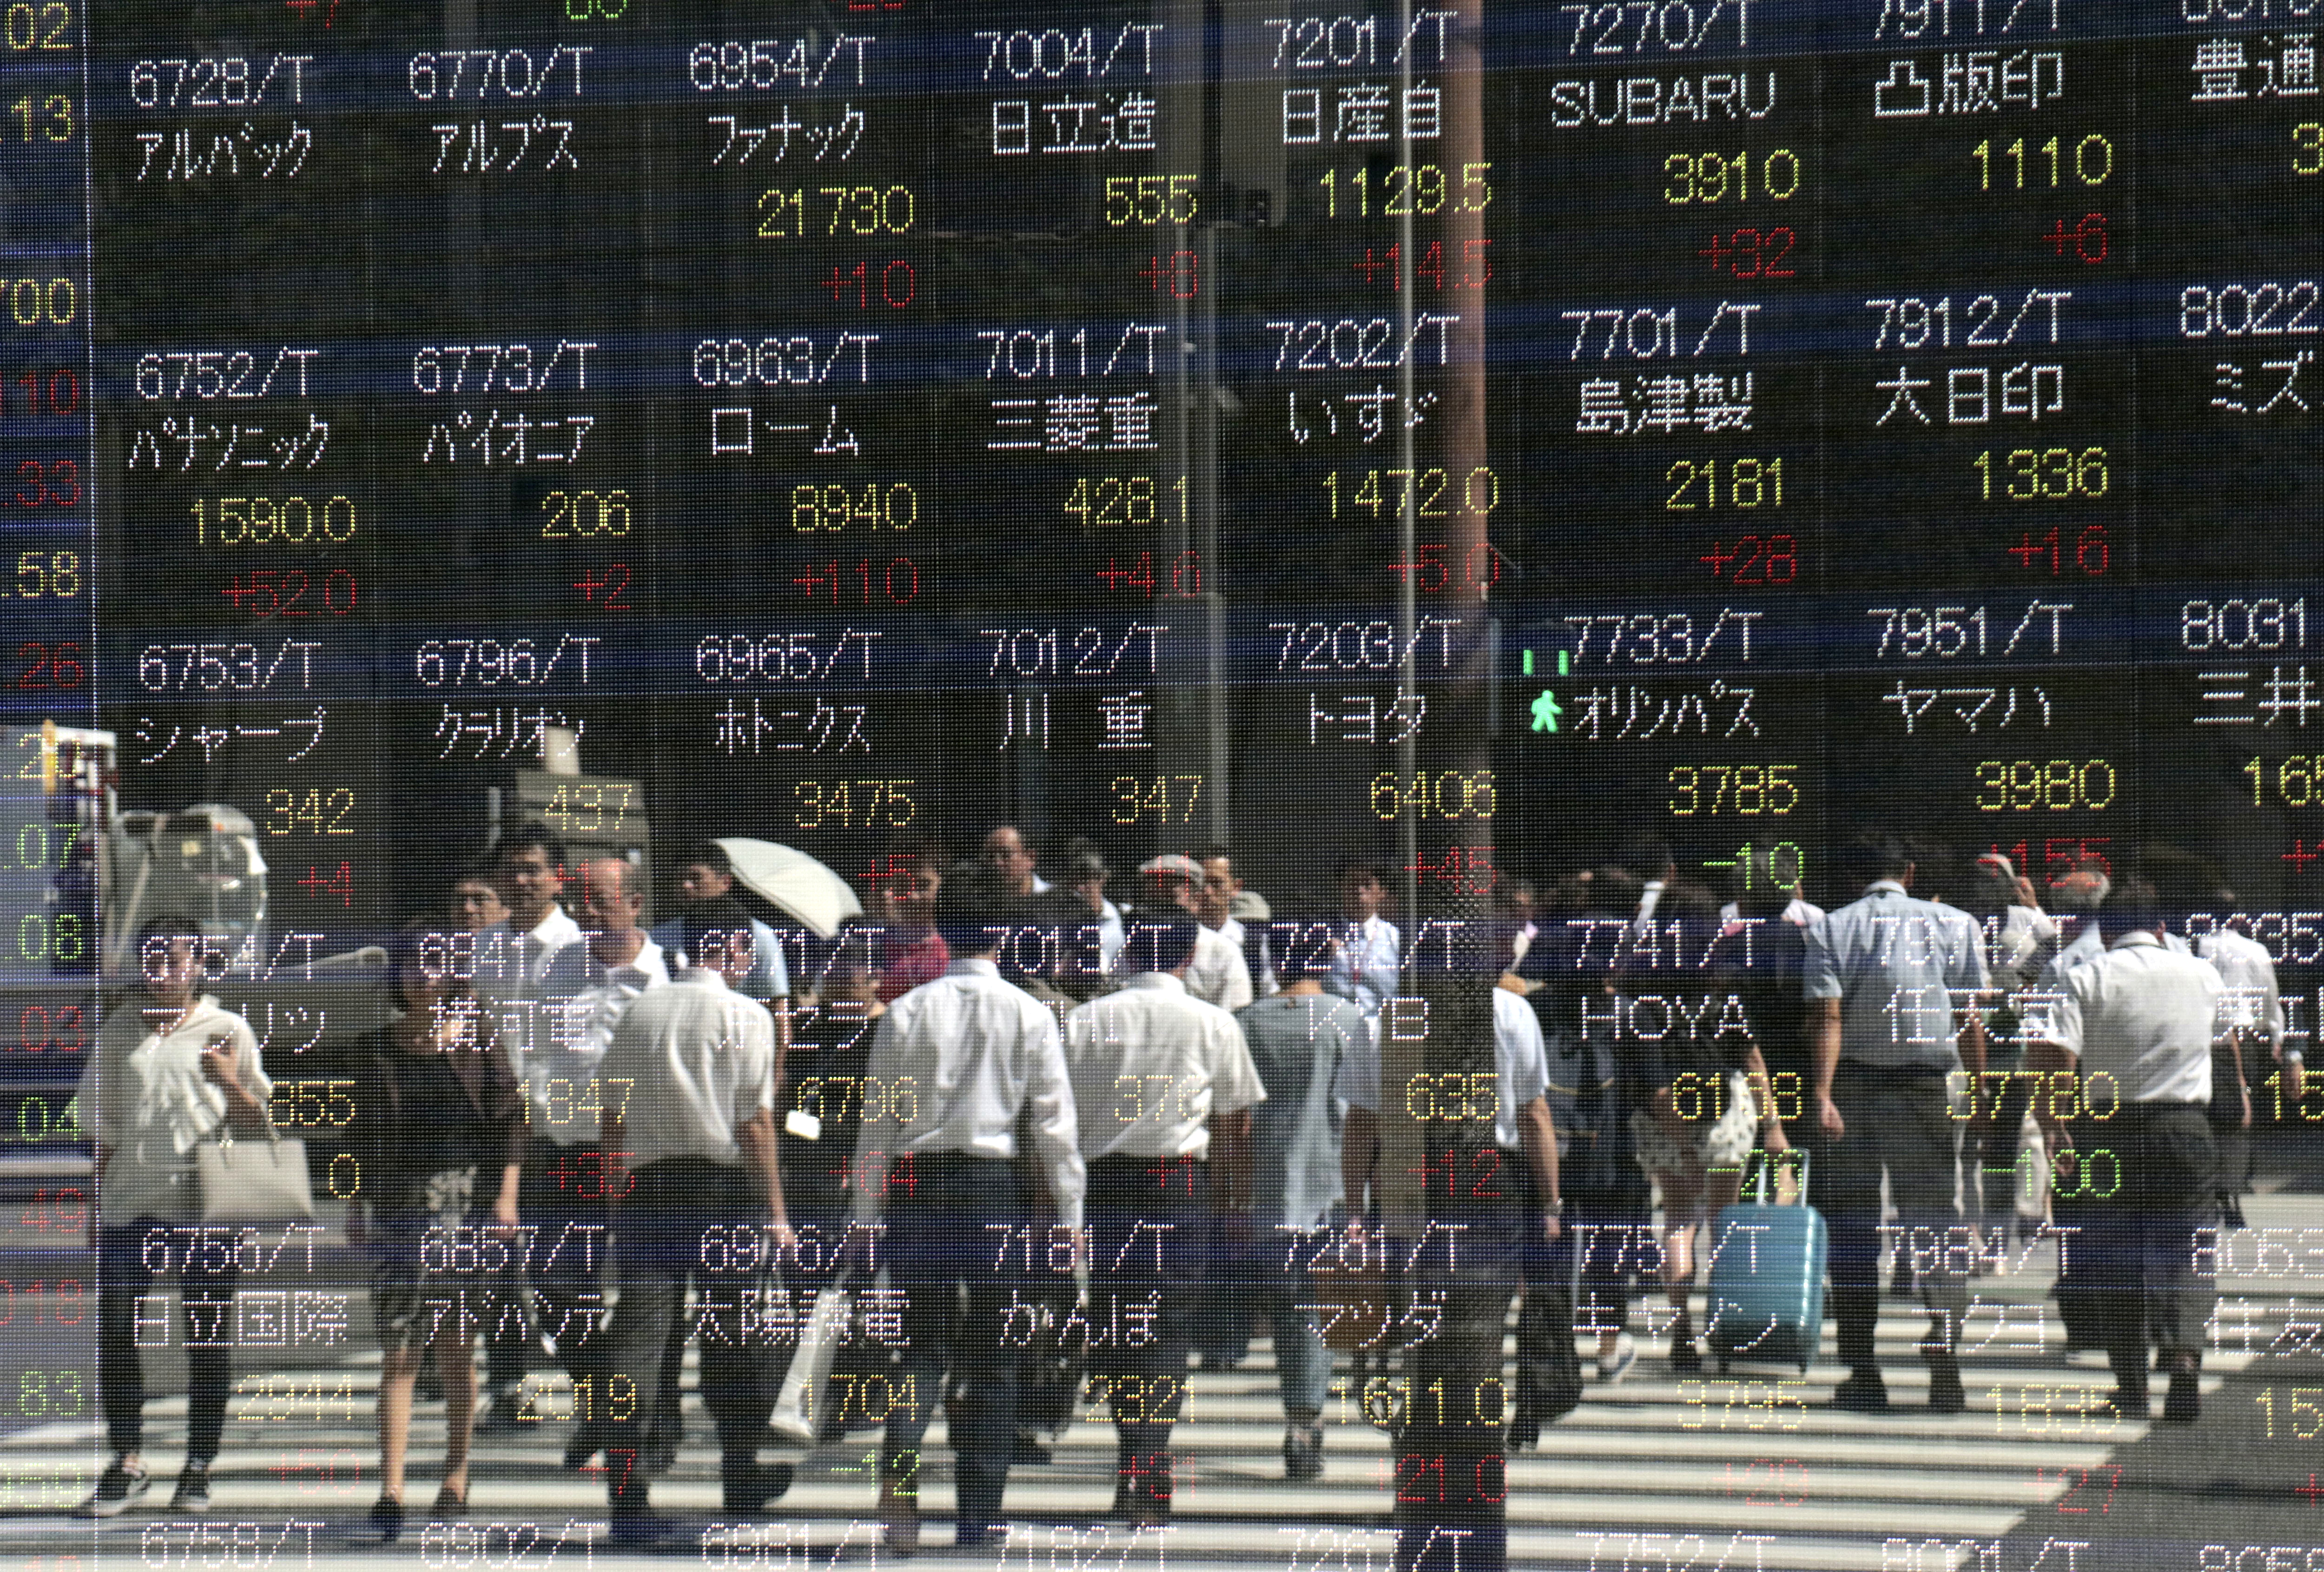 Japan Financial Markets-2 People are reflected on an electronic stock indicator of a securities firm in Tokyo, Wednesday, Sept. 13, 2017. Most Asian stock markets were higher Wednesday after U.S. shares rose on encouraging jobs data while worries about North Korea and twin hurricane disasters eased. (AP Photo/Shizuo Kambayashi)